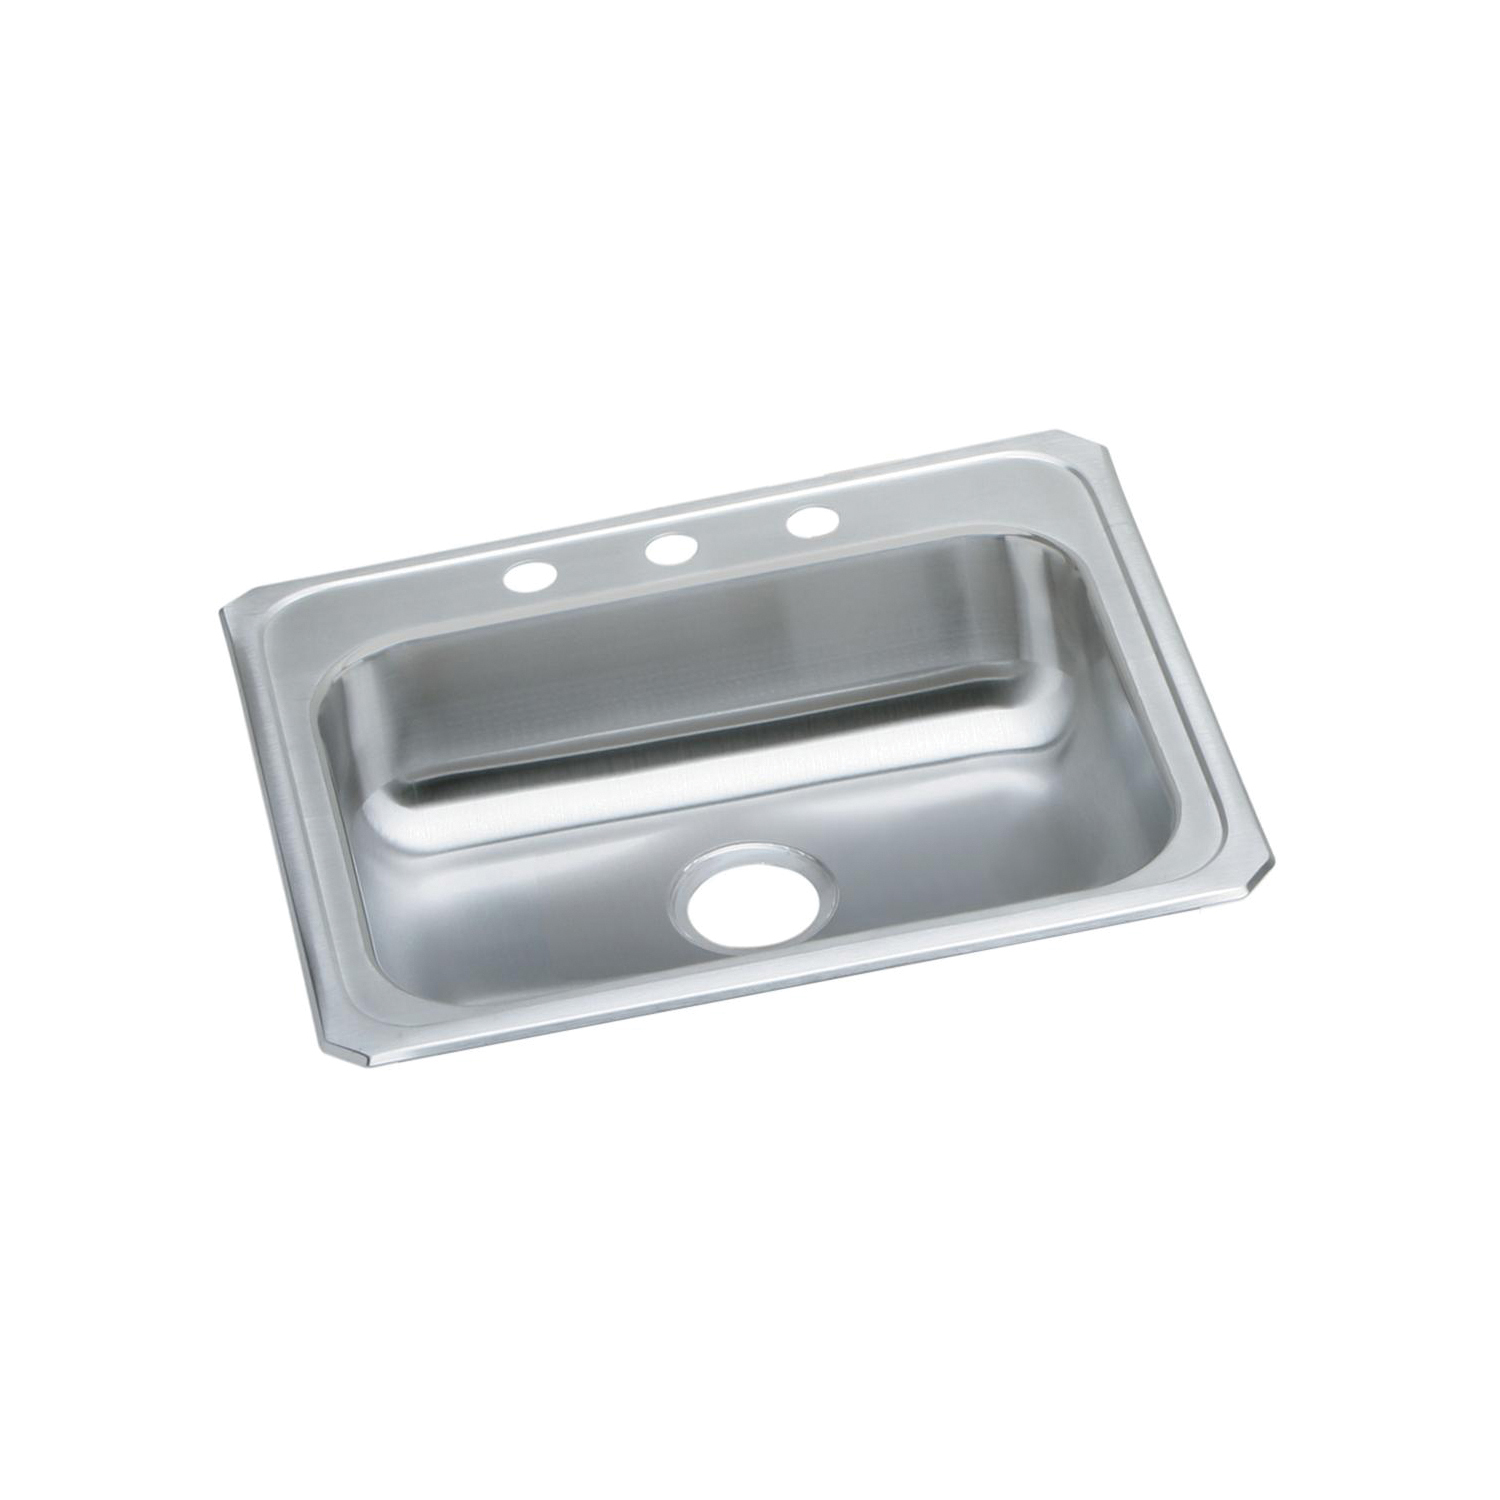 Elkay® GECR25213 Celebrity Kitchen Sink, Rectangular, 3 Faucet Holes, 25 in W x 21-1/4 in D x 5-3/8 in H, Top Mount, Stainless Steel, Brushed Satin, Domestic